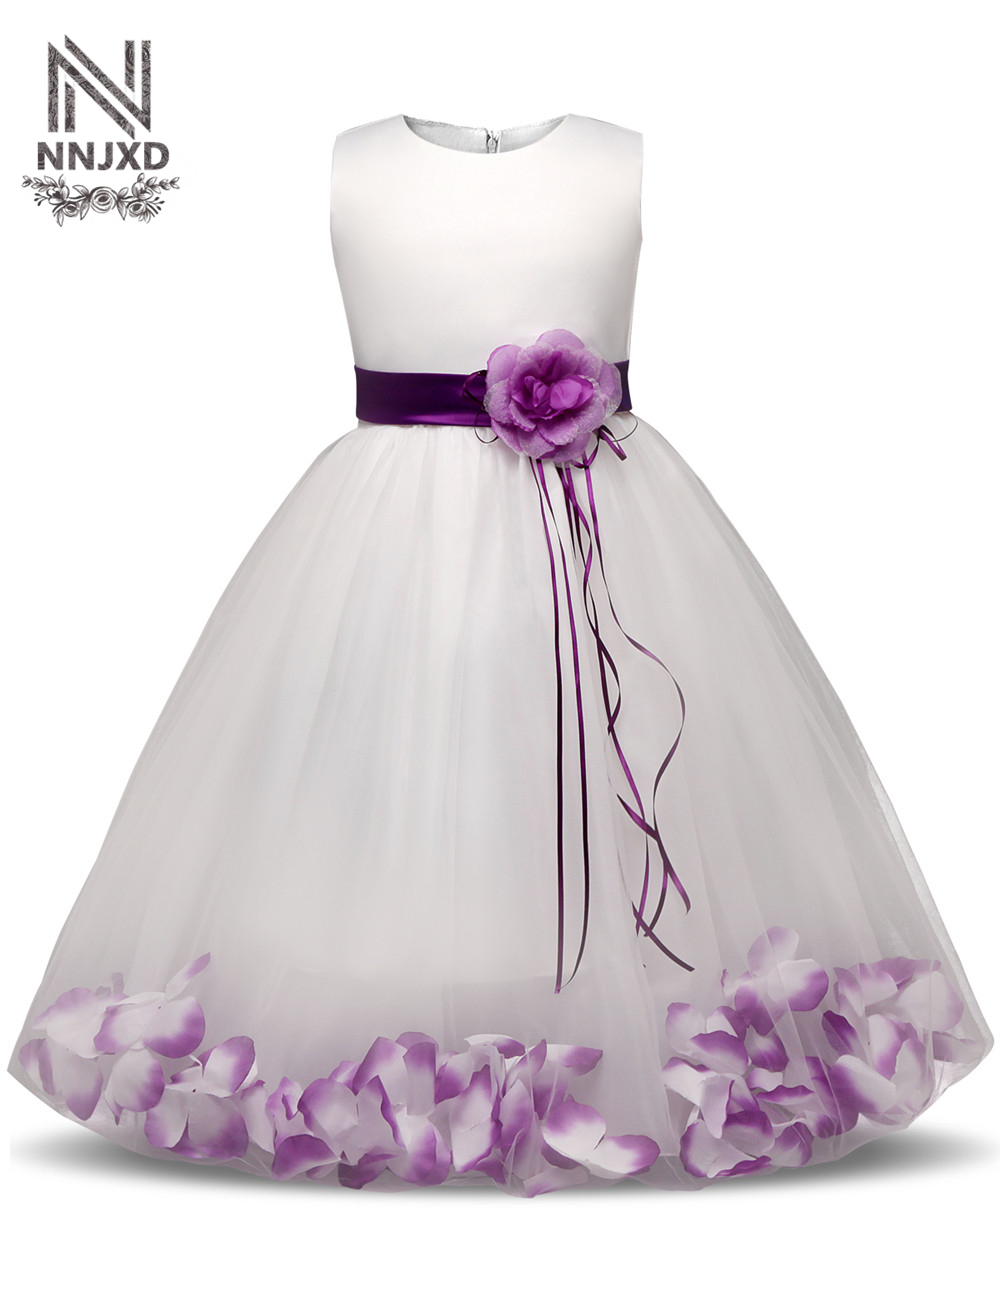 Kids Party Costume For Girls Prom Dresses Children's Clothing Girl 10 Years Princess Flower Dress For Wedding Birthday Outfits princess dress rose flower girl dress summer wedding birthday party dresses for girls children s costume teenager prom dress